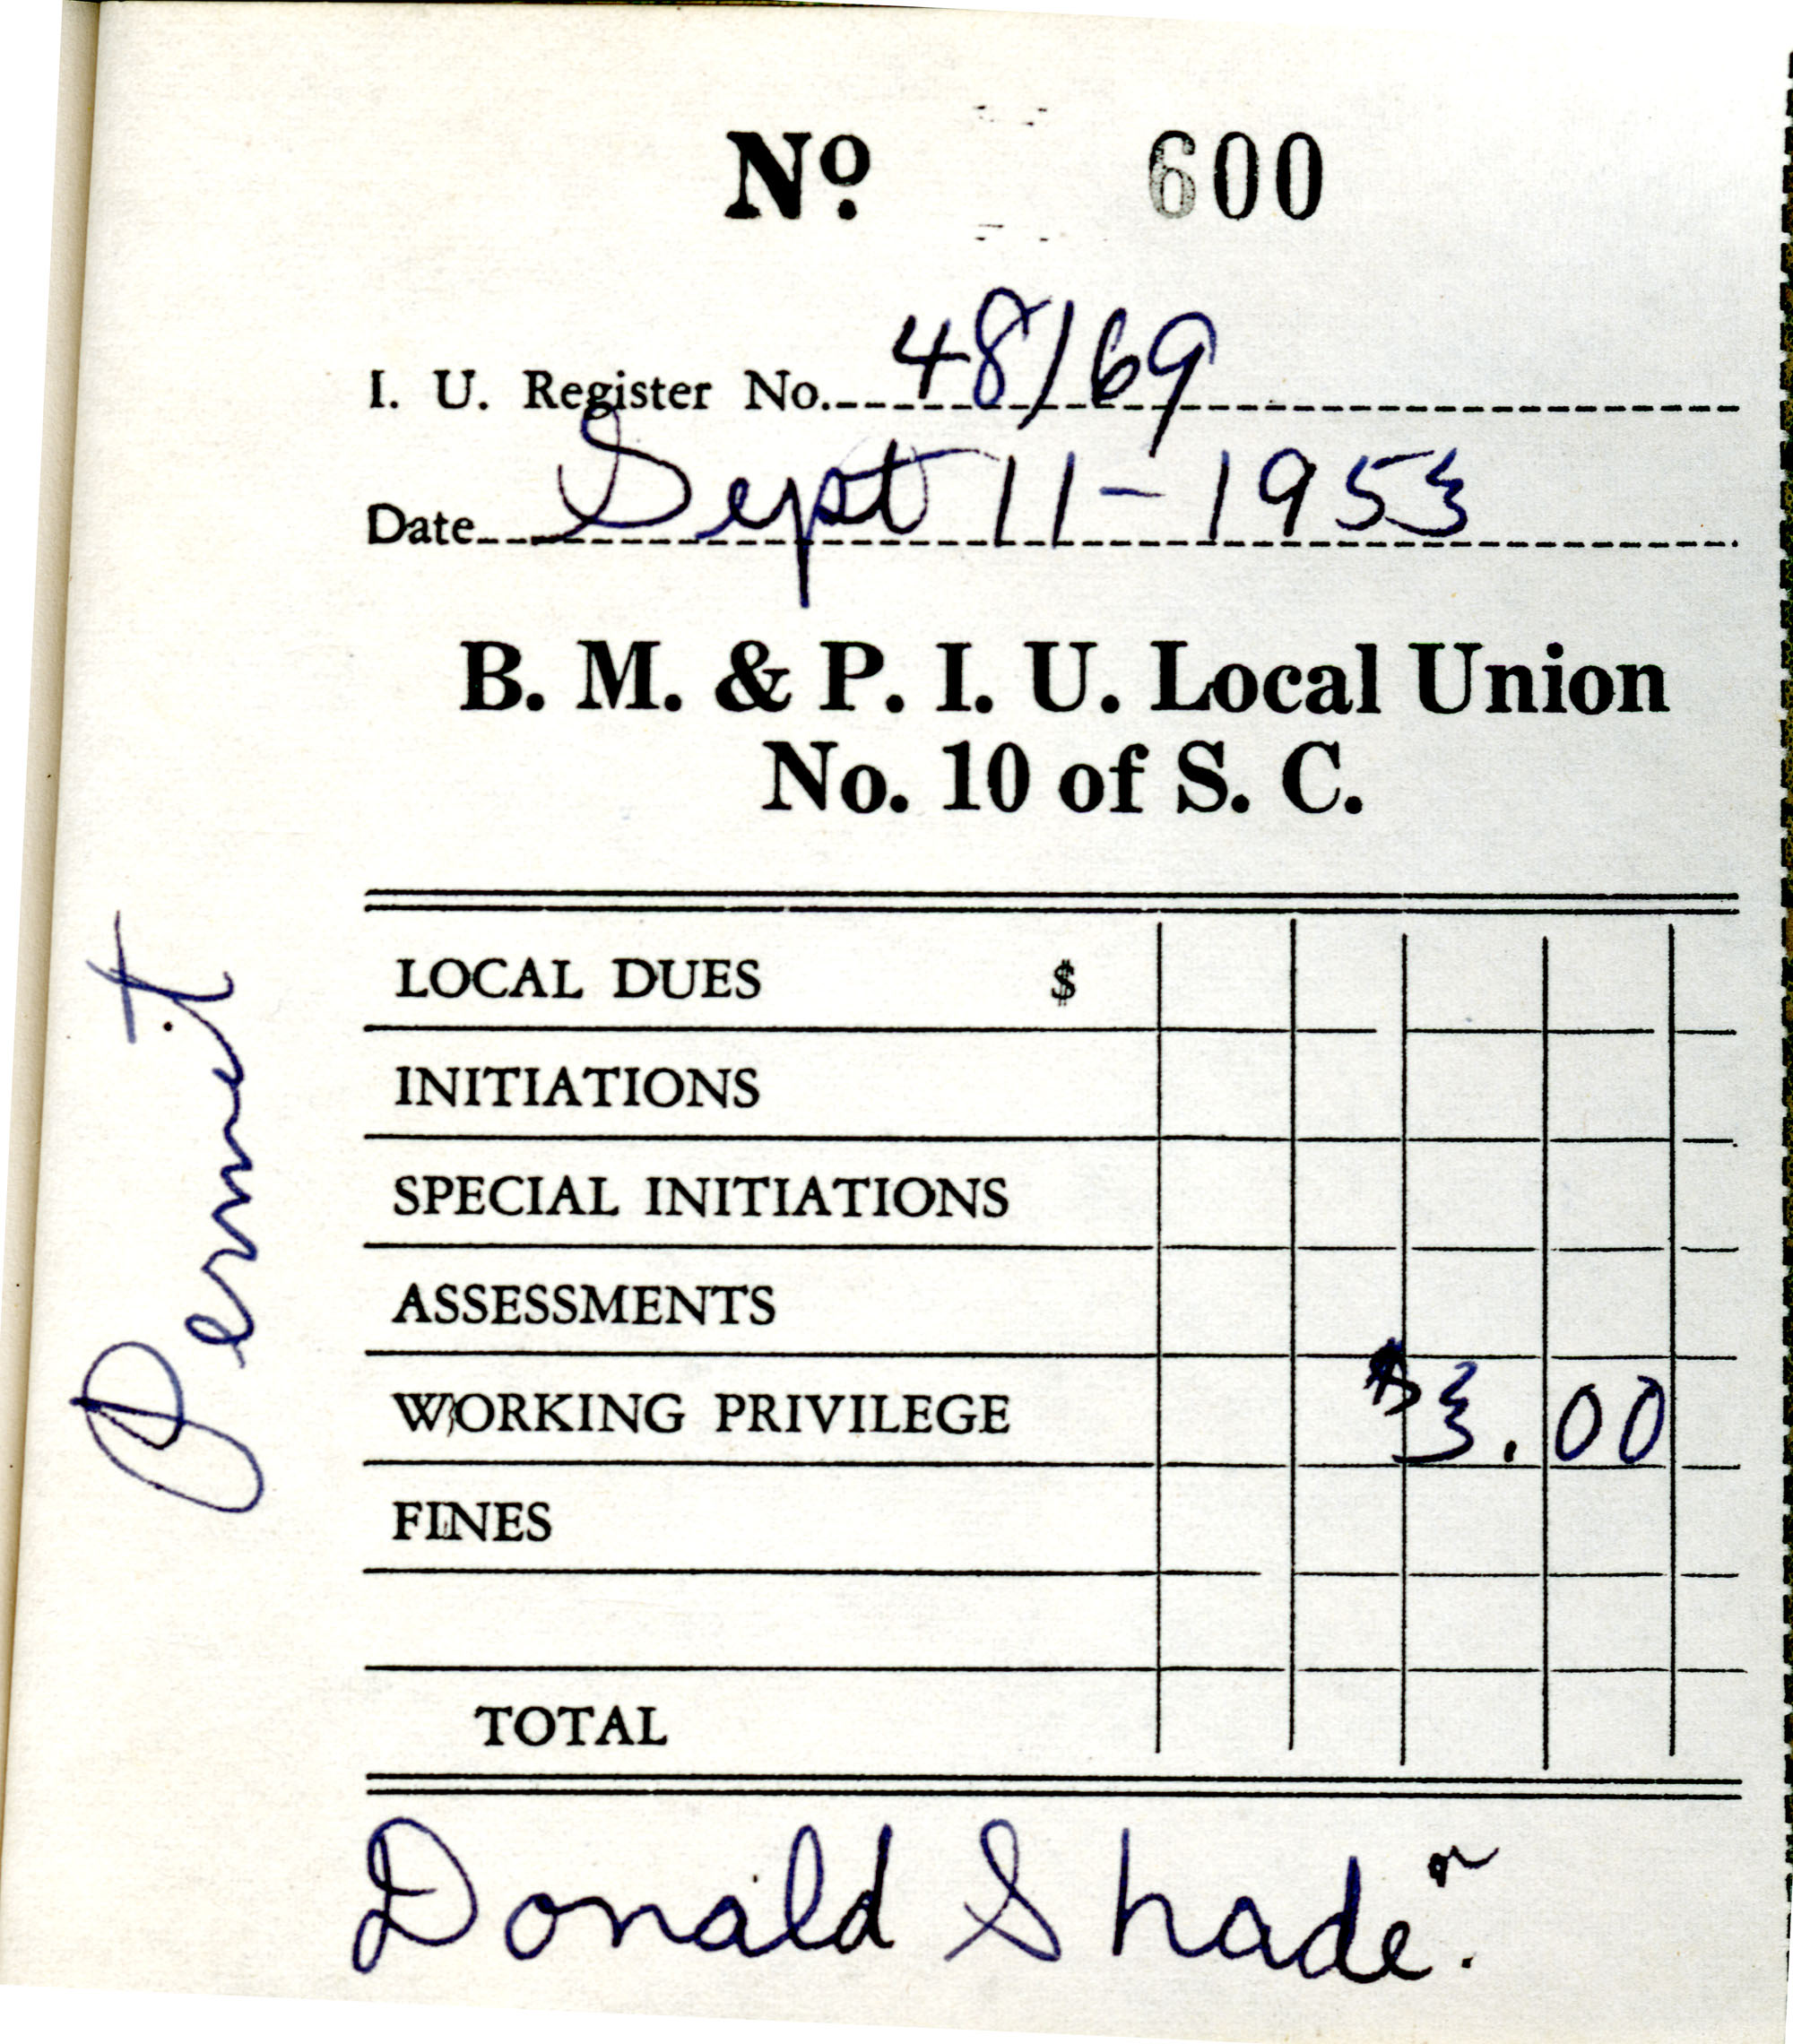 Receipt Book 1, Page 49